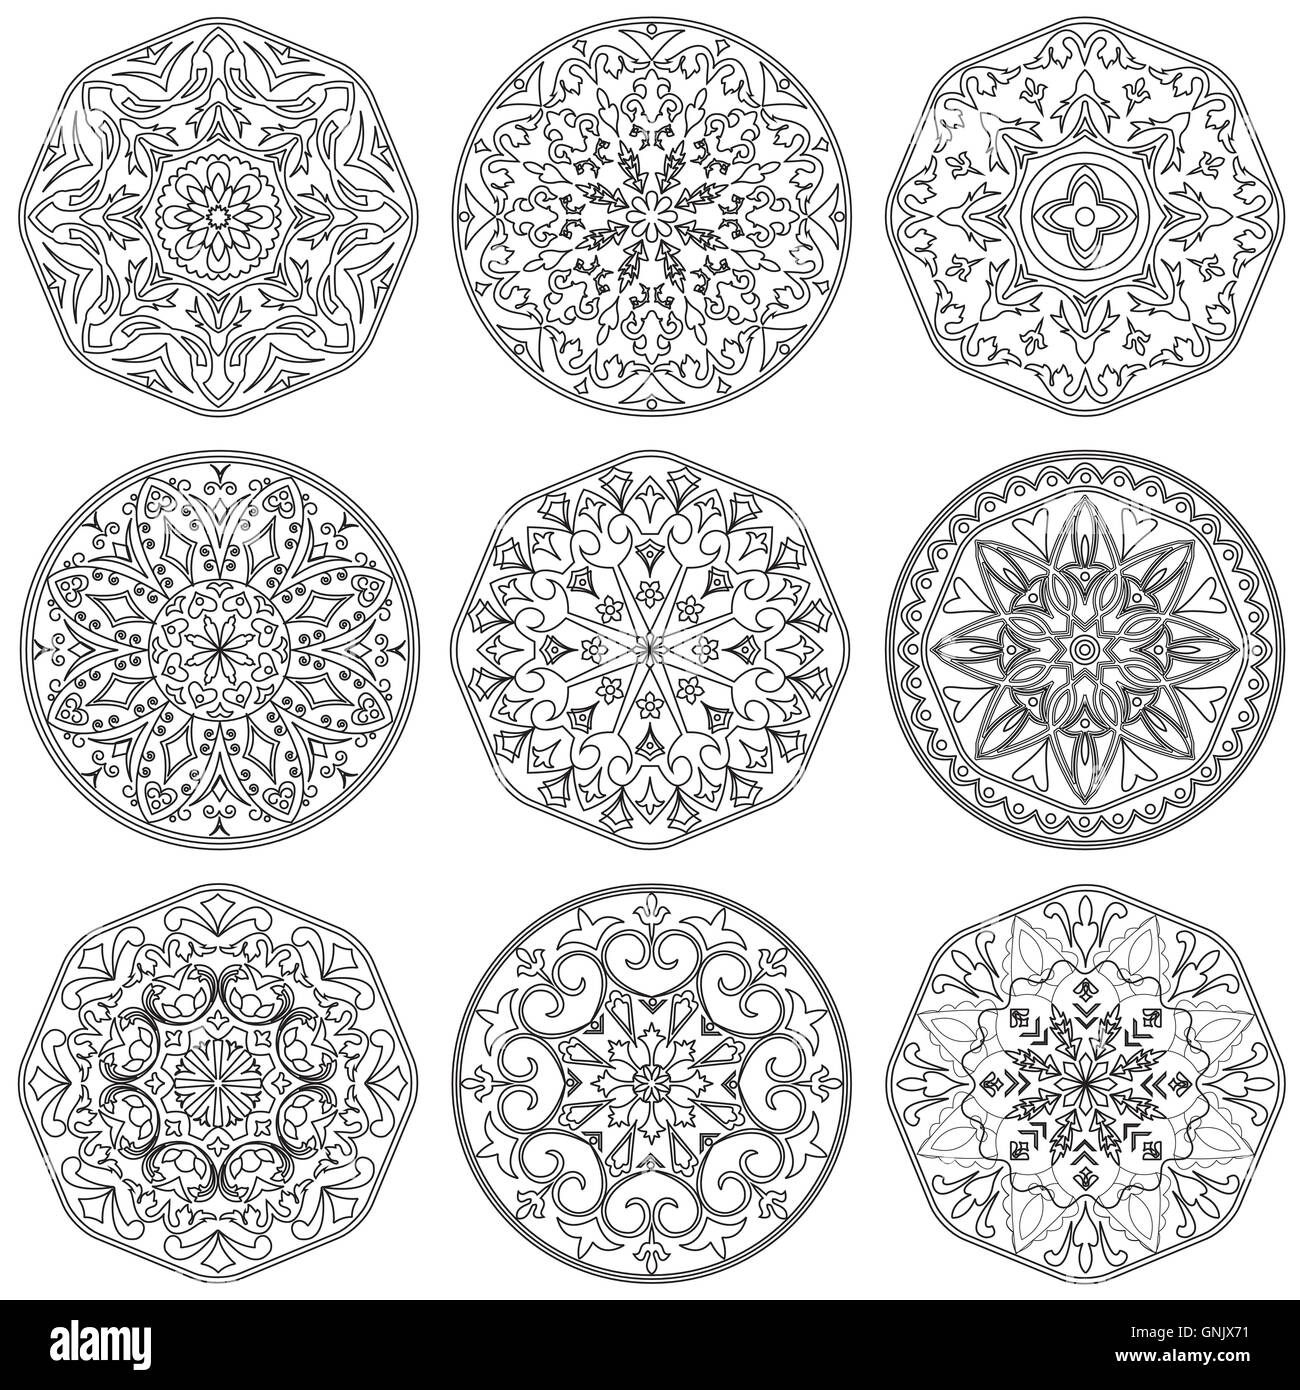 Set of 9 decorative elements mandala in black and white stock image